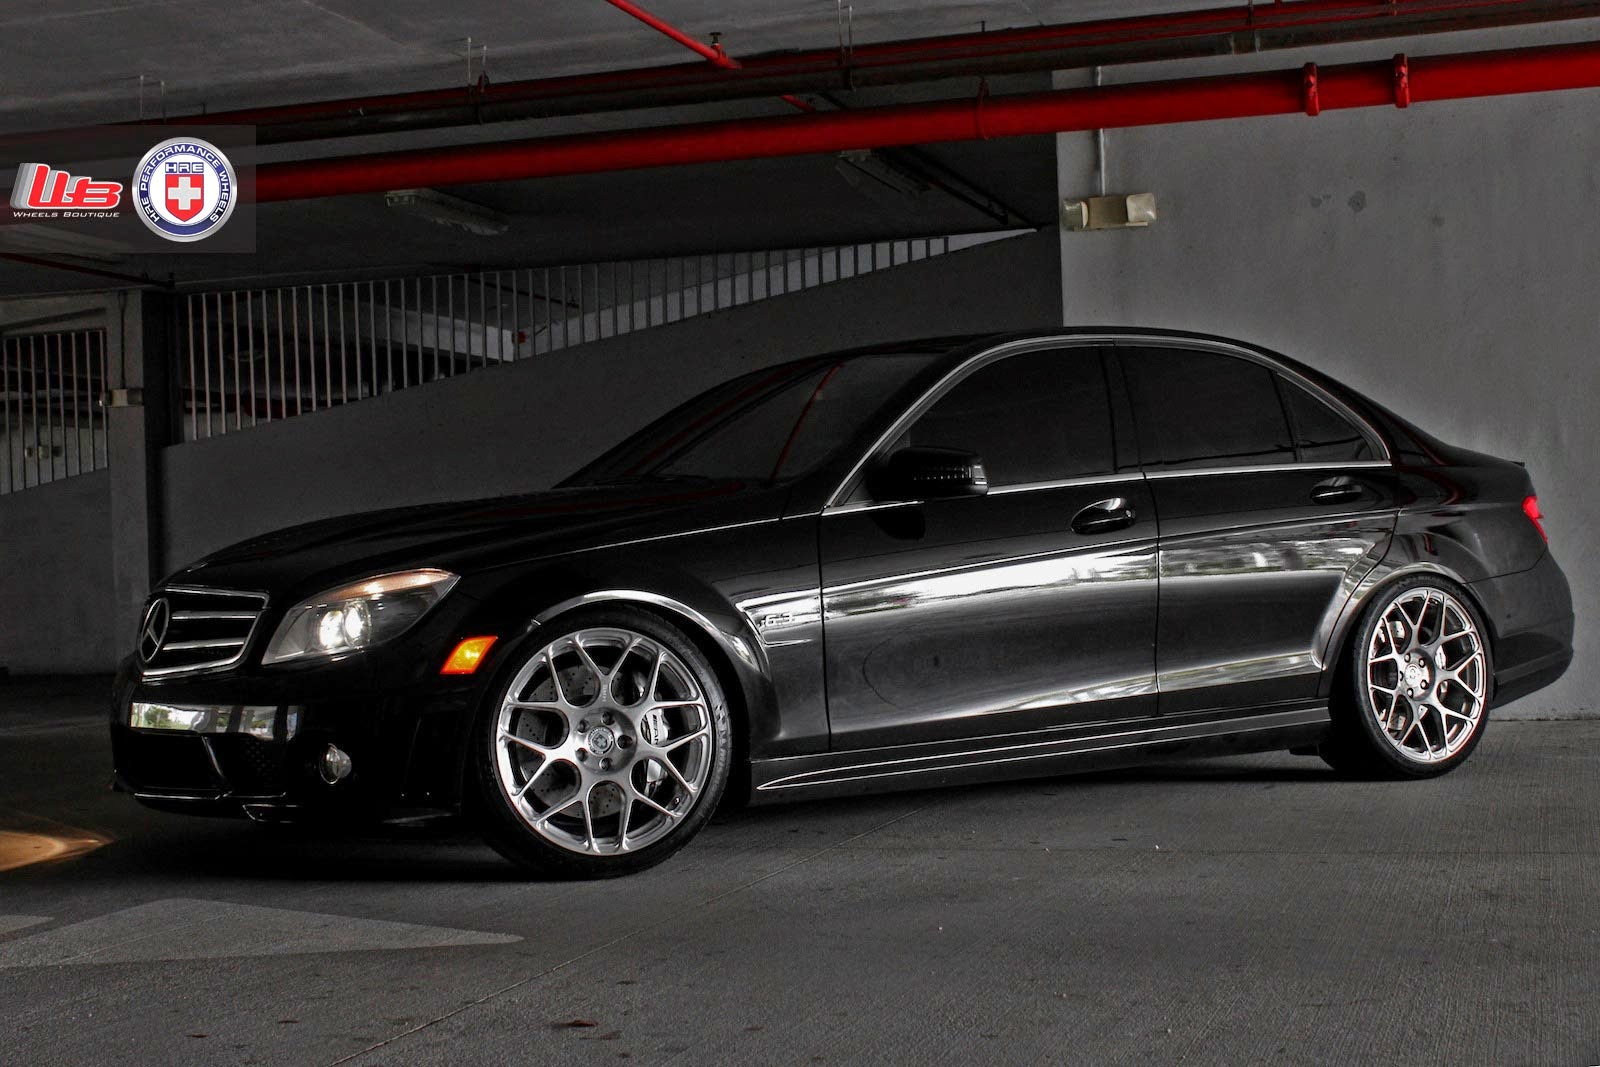 mercedes benz w204 c63 amg on hre performance wheels benztuning. Black Bedroom Furniture Sets. Home Design Ideas